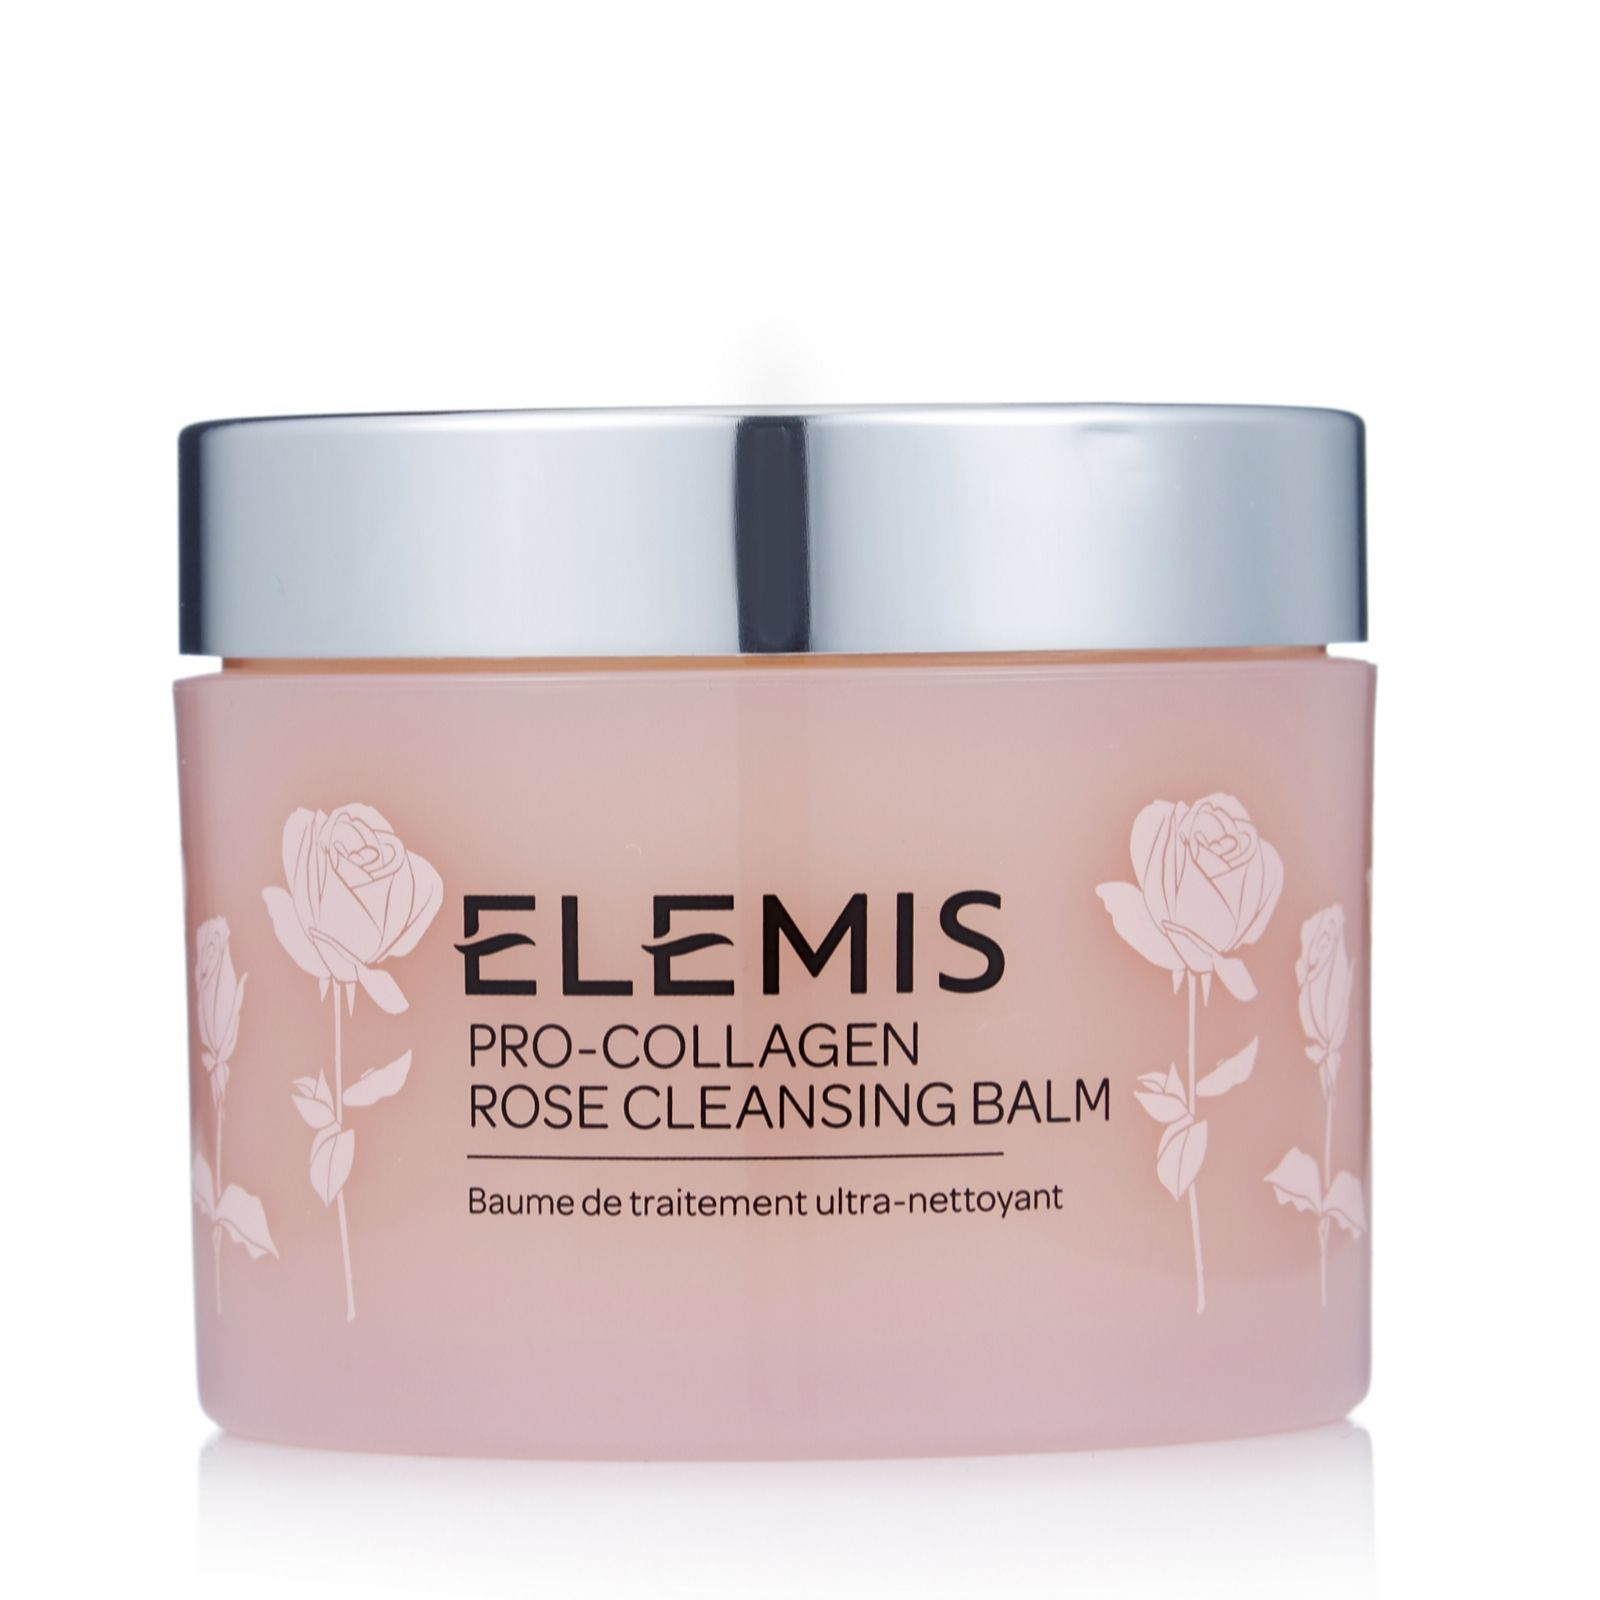 be618dafe5 Elemis' award-winning Pro Collagen Cleansing Balm has been formulated with  a beautiful new rose blend.